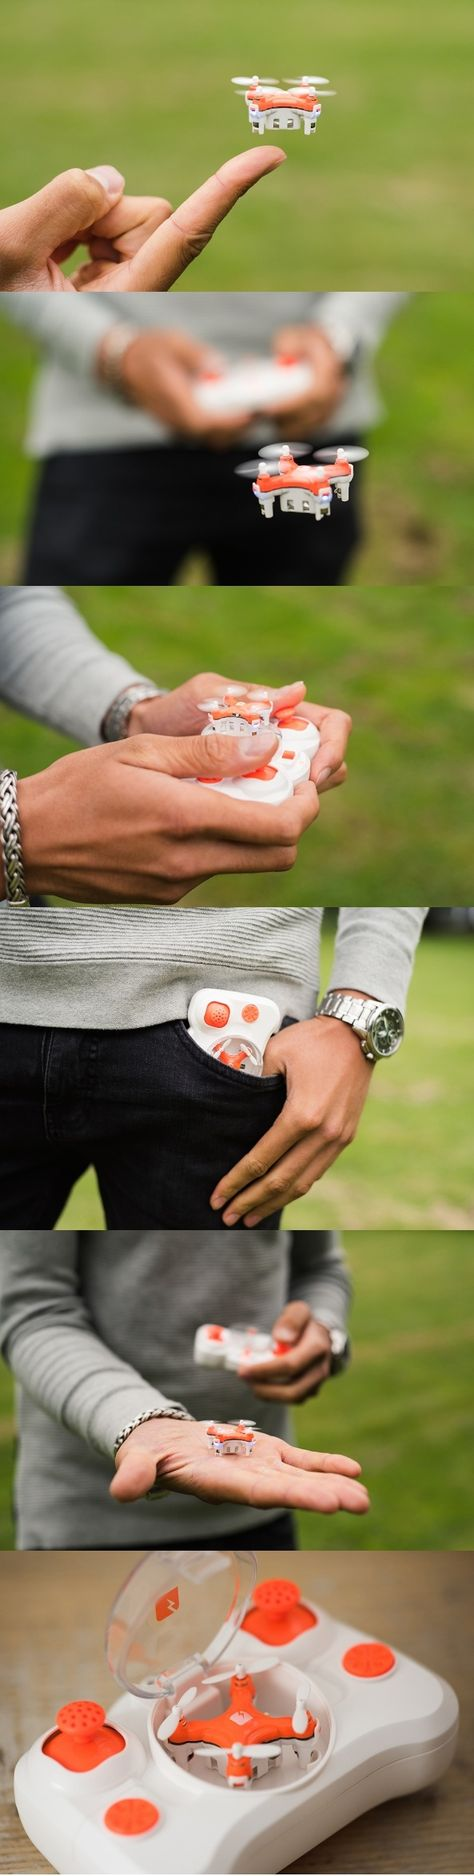 Introducing the teeny tiniest drone EVER! The #SKEYE #Pico Drone is so small, it can easily sit on your finger and fly on precision controlled exercises into the narrowest of nooks! The drone is designed to be taken everywhere / TechNews24h.com